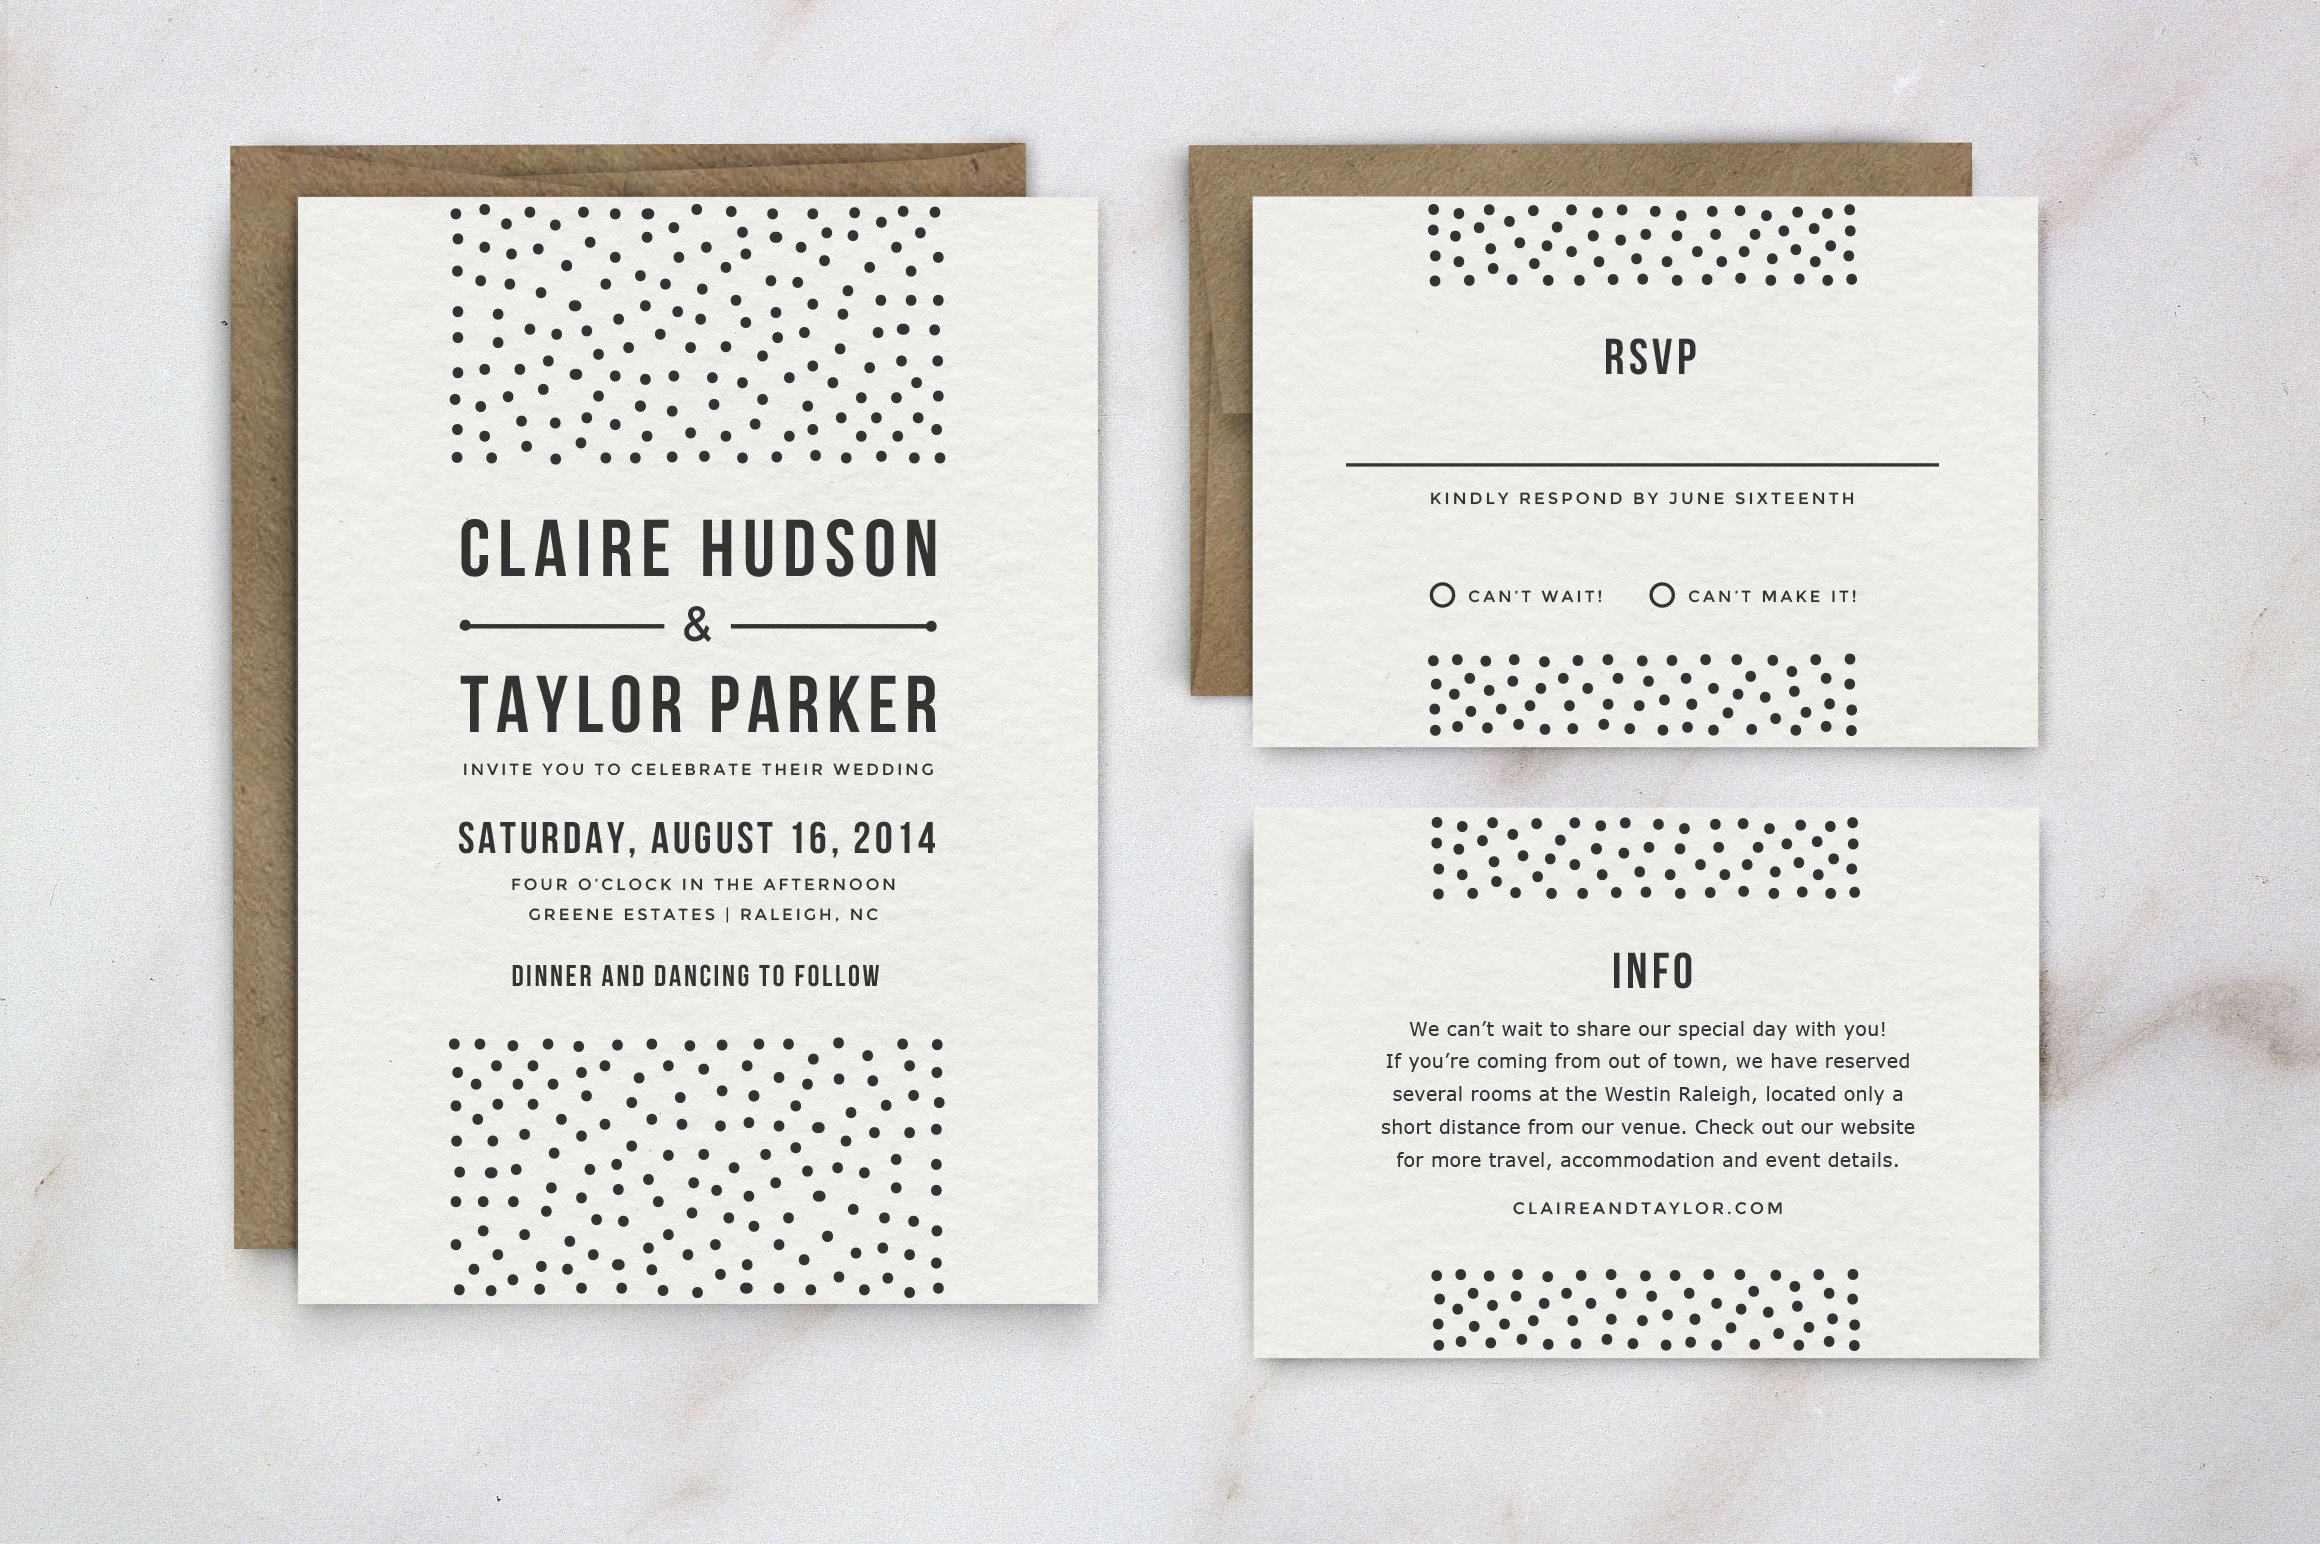 Wedding Invitation Template Suite ~ Invitation Templates ~ Creative ...